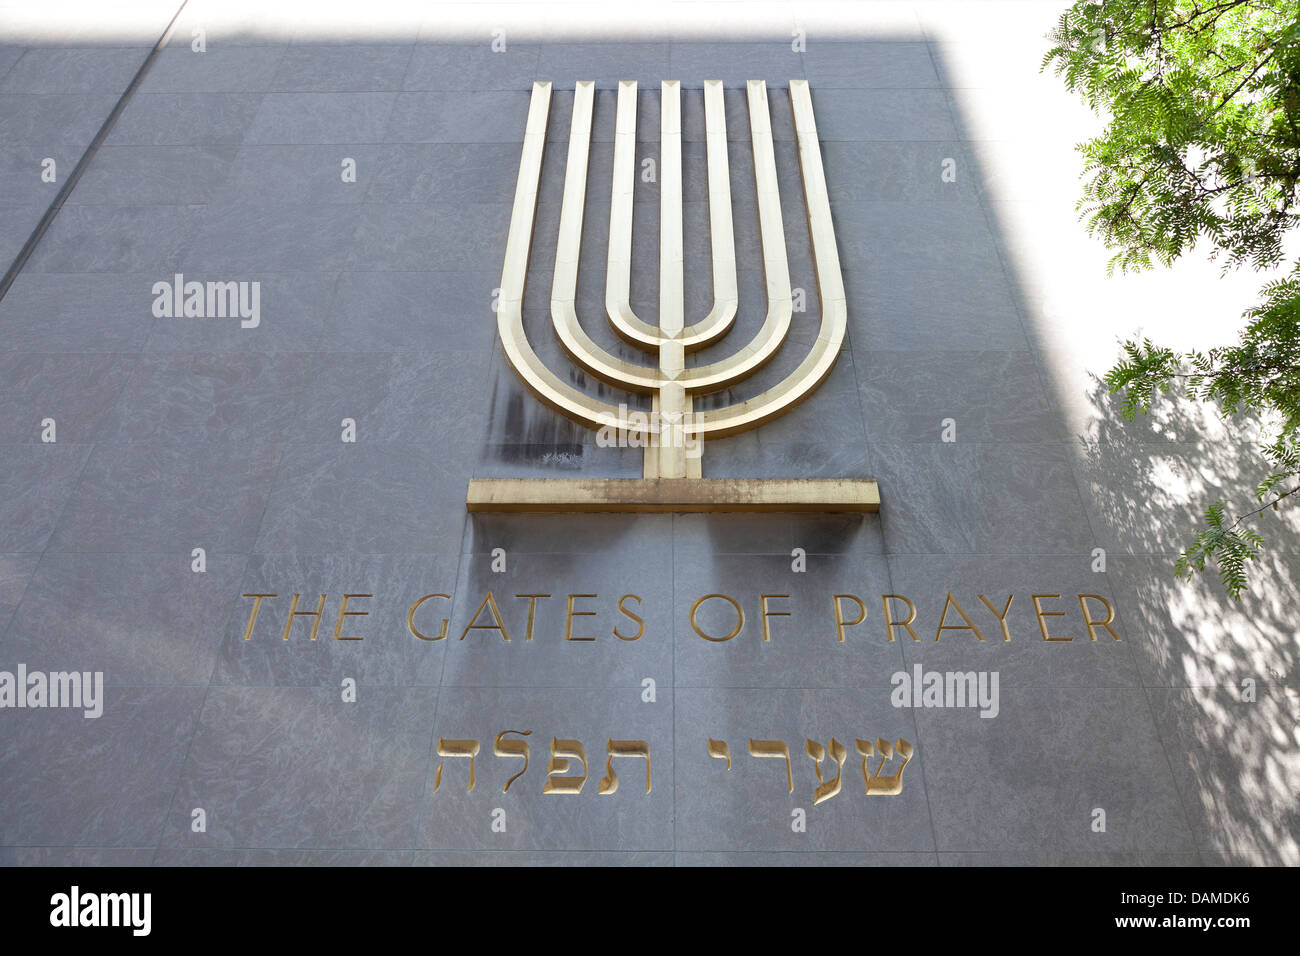 Temple Gates of Prayer, Congregation Shaarai Tefilla Jewish synagogue, New York City, USA - Stock Image